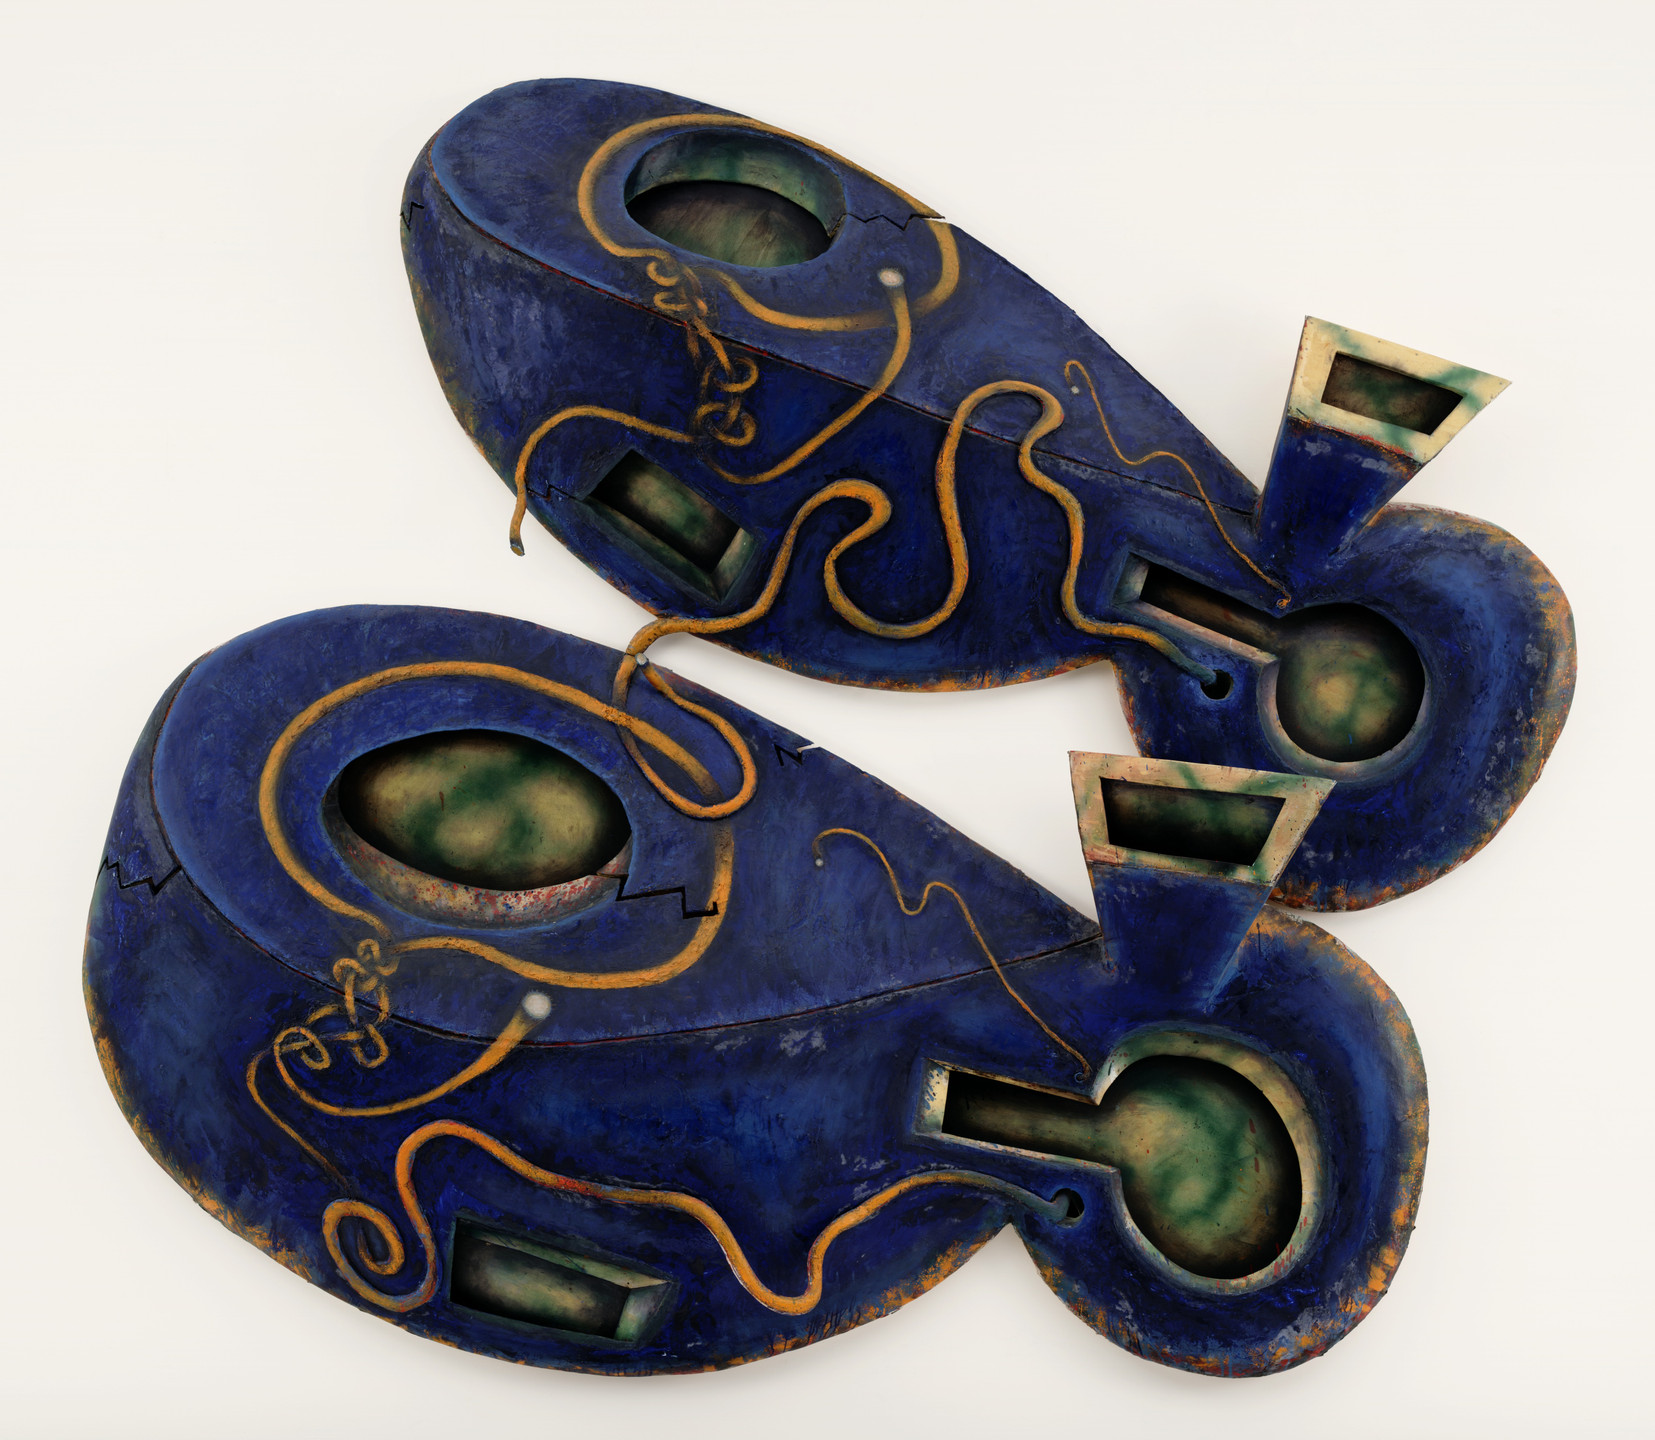 Elizabeth Murray. Dis Pair. fall 1989 - winter 1990